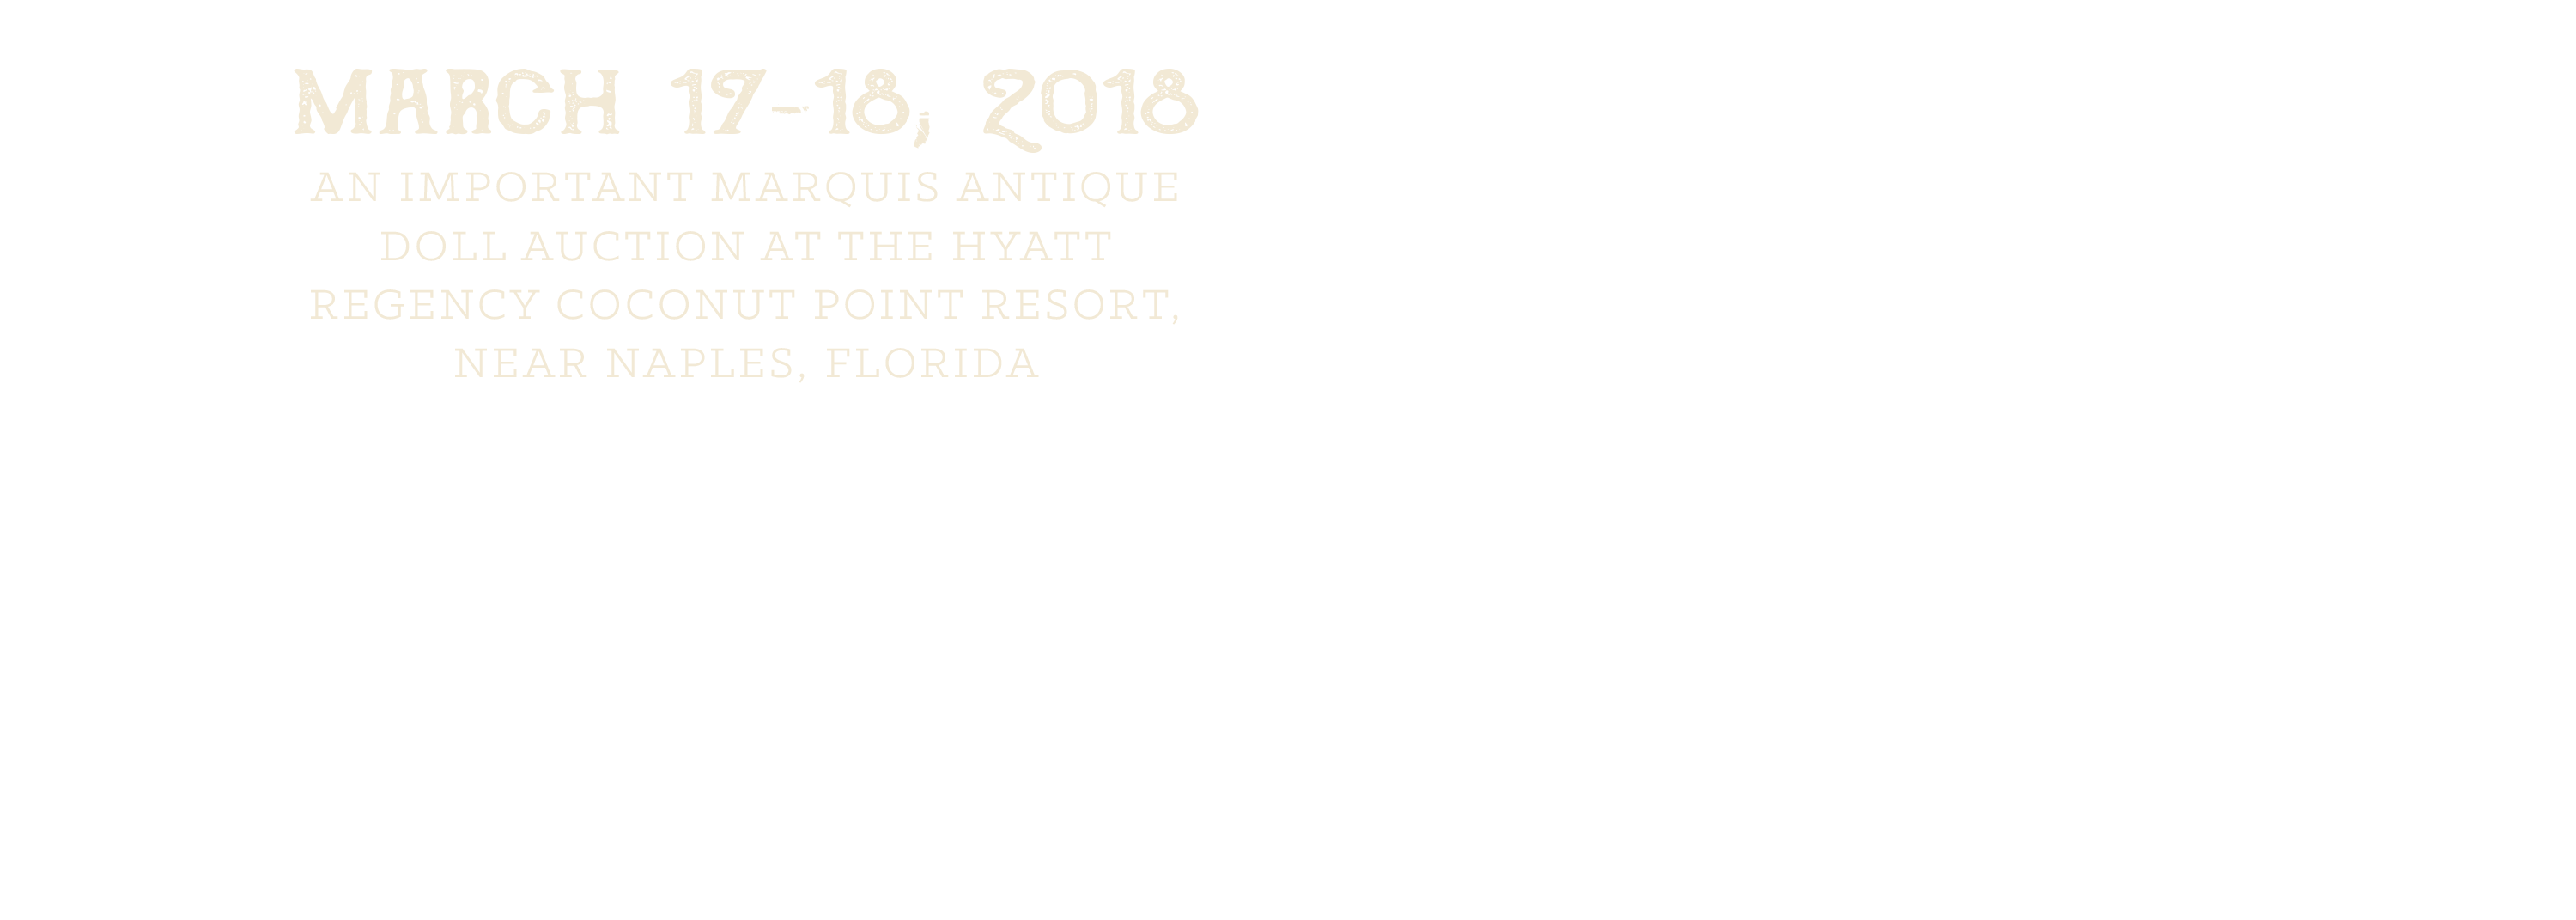 marquis-03-17-18-slider4.png